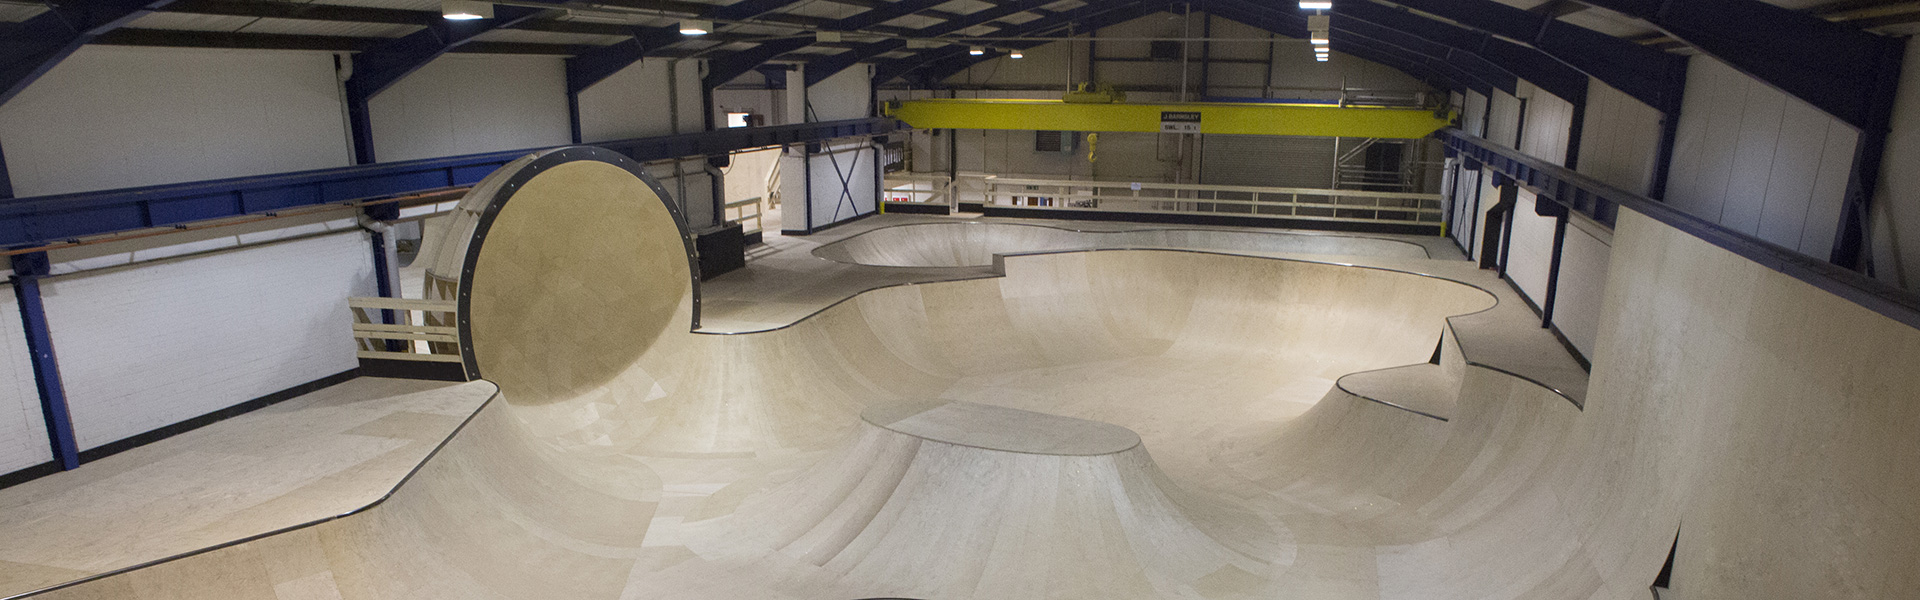 Overhead view of Unit 360 in Stourbridge, showing the main bowl section with the groundbreaking 'pod' hemisphere ramp